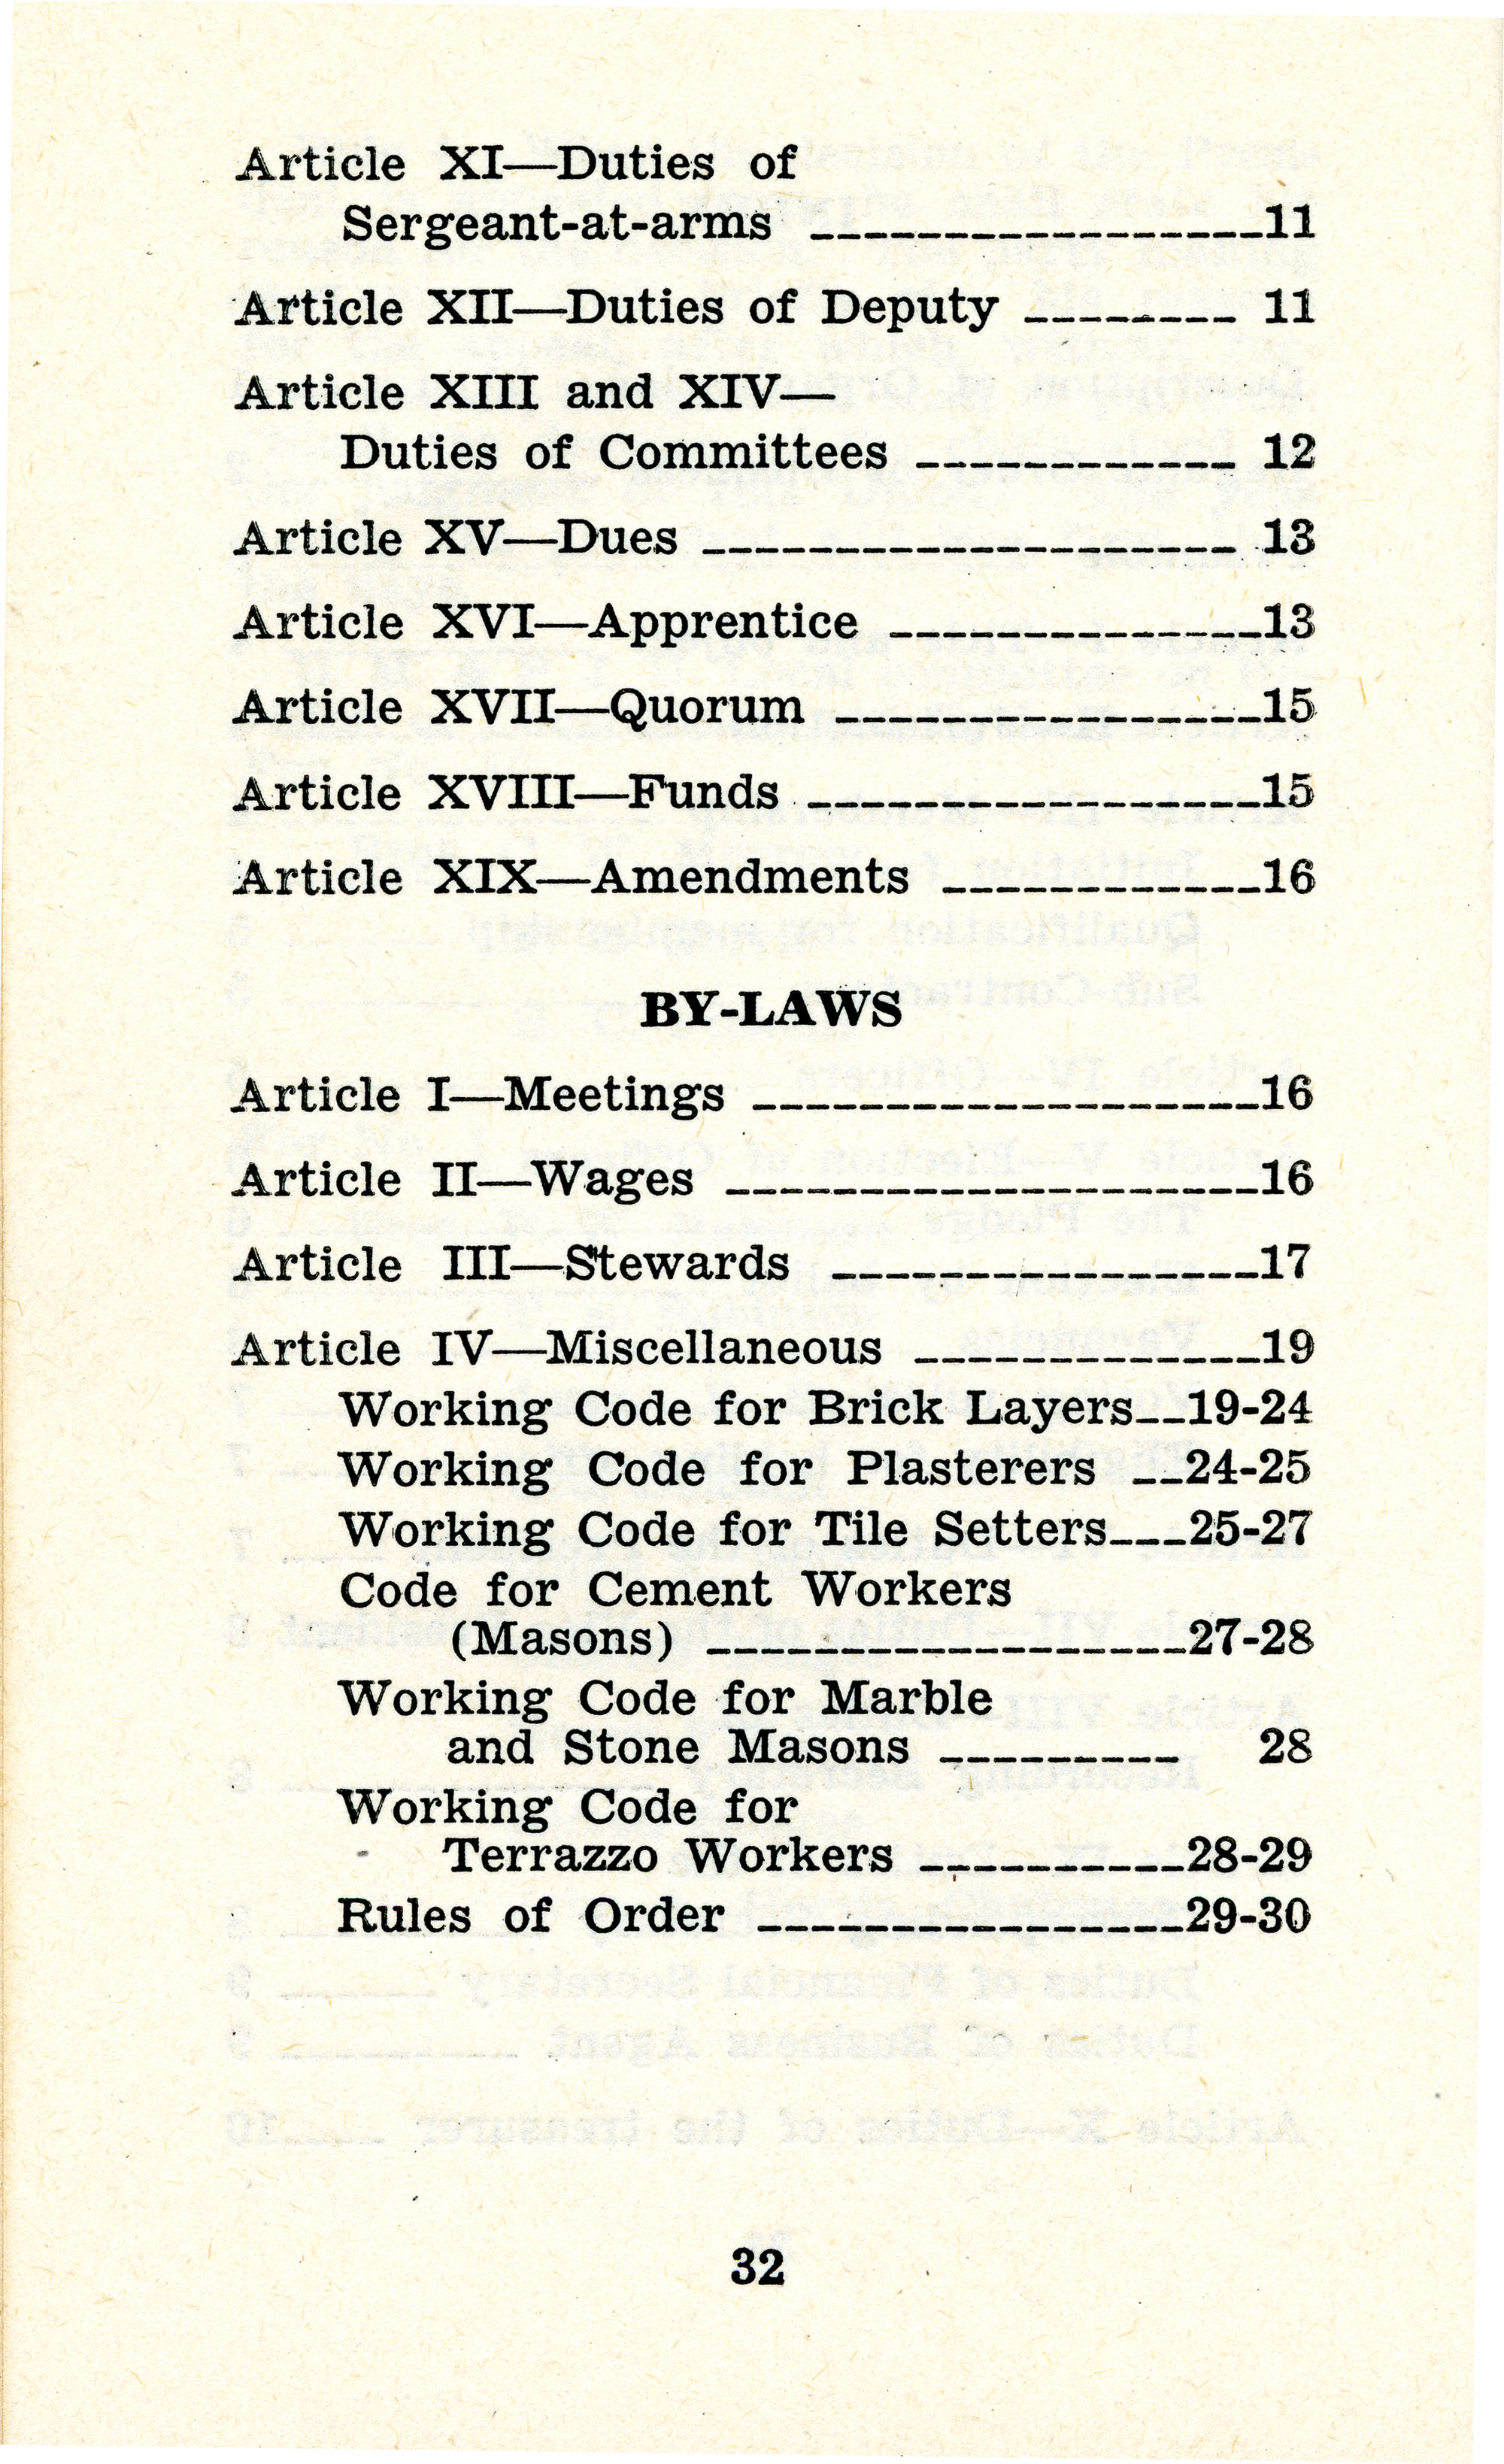 Constitution and by-laws of unions no.1 and 10, Page 17